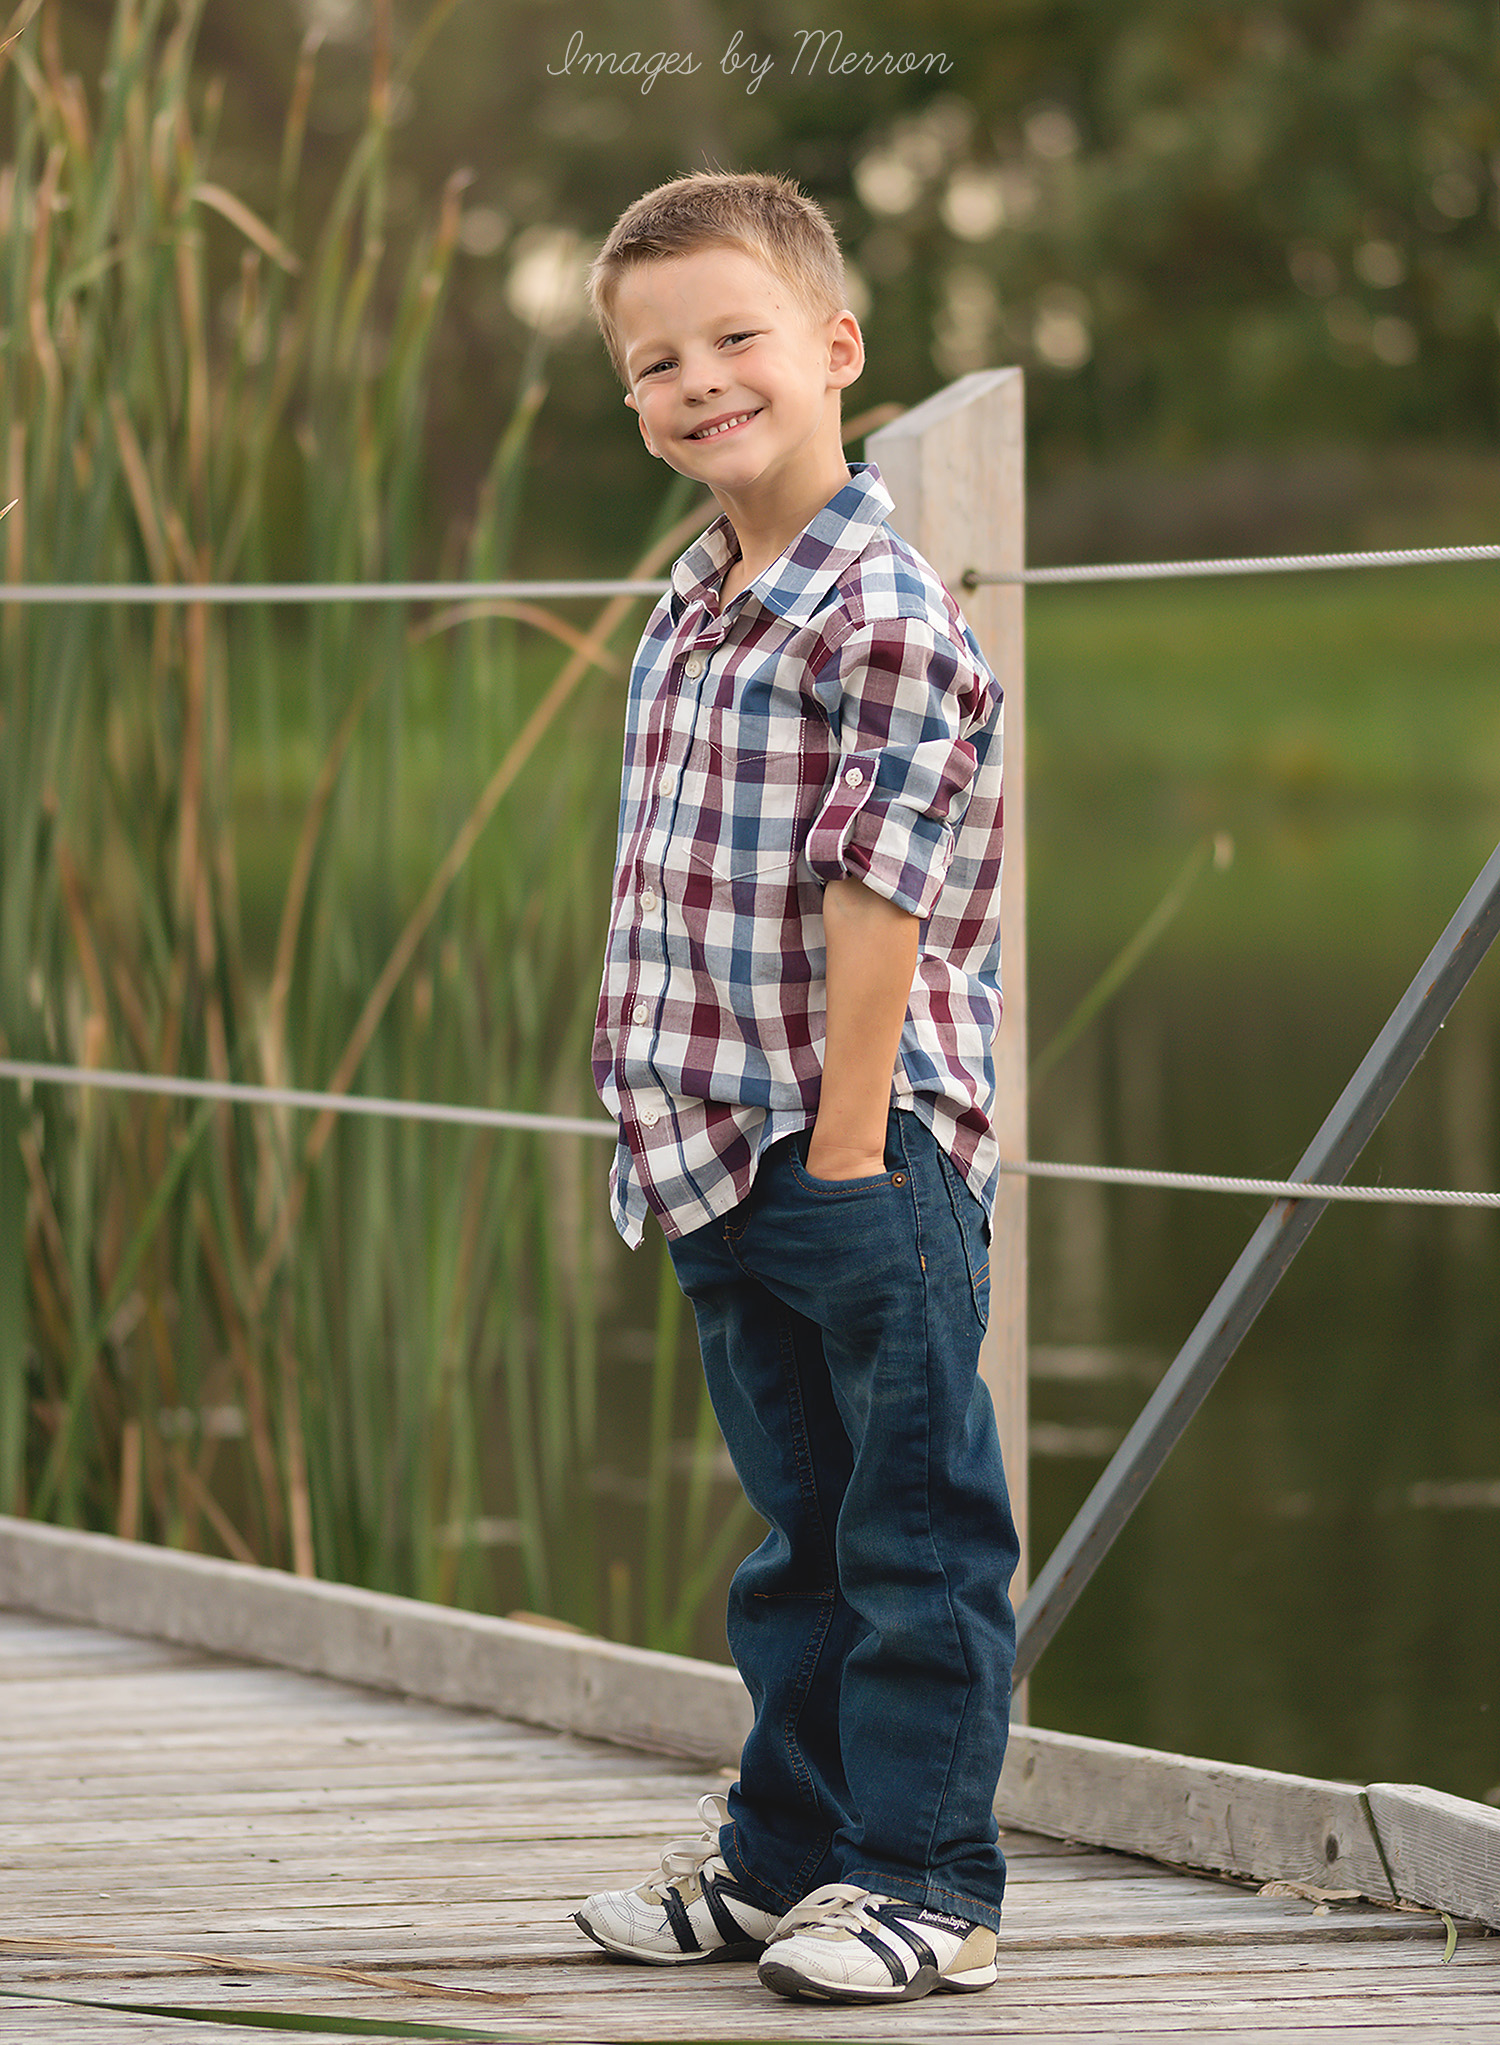 Young boy posing for his photoshoot at Jester Park in Iowa